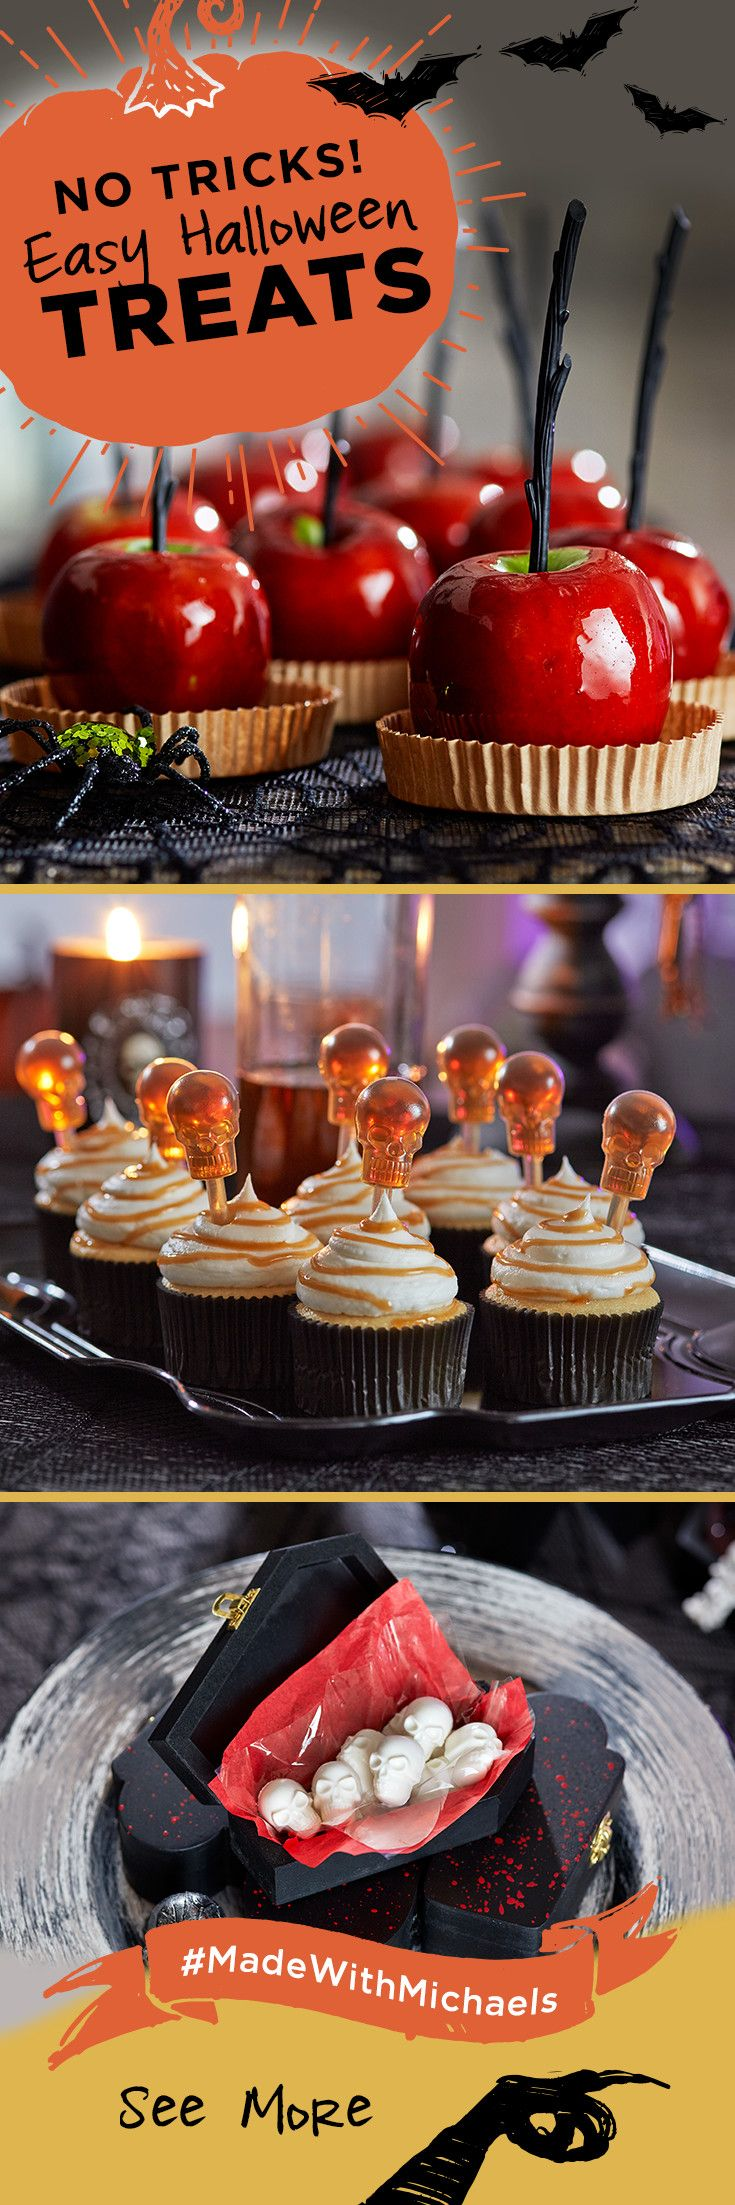 these easy to make halloween treats are sure to be a hit at your halloween party learn how to make these treats and get even more ideas at michaels - Michaels Halloween Decorations